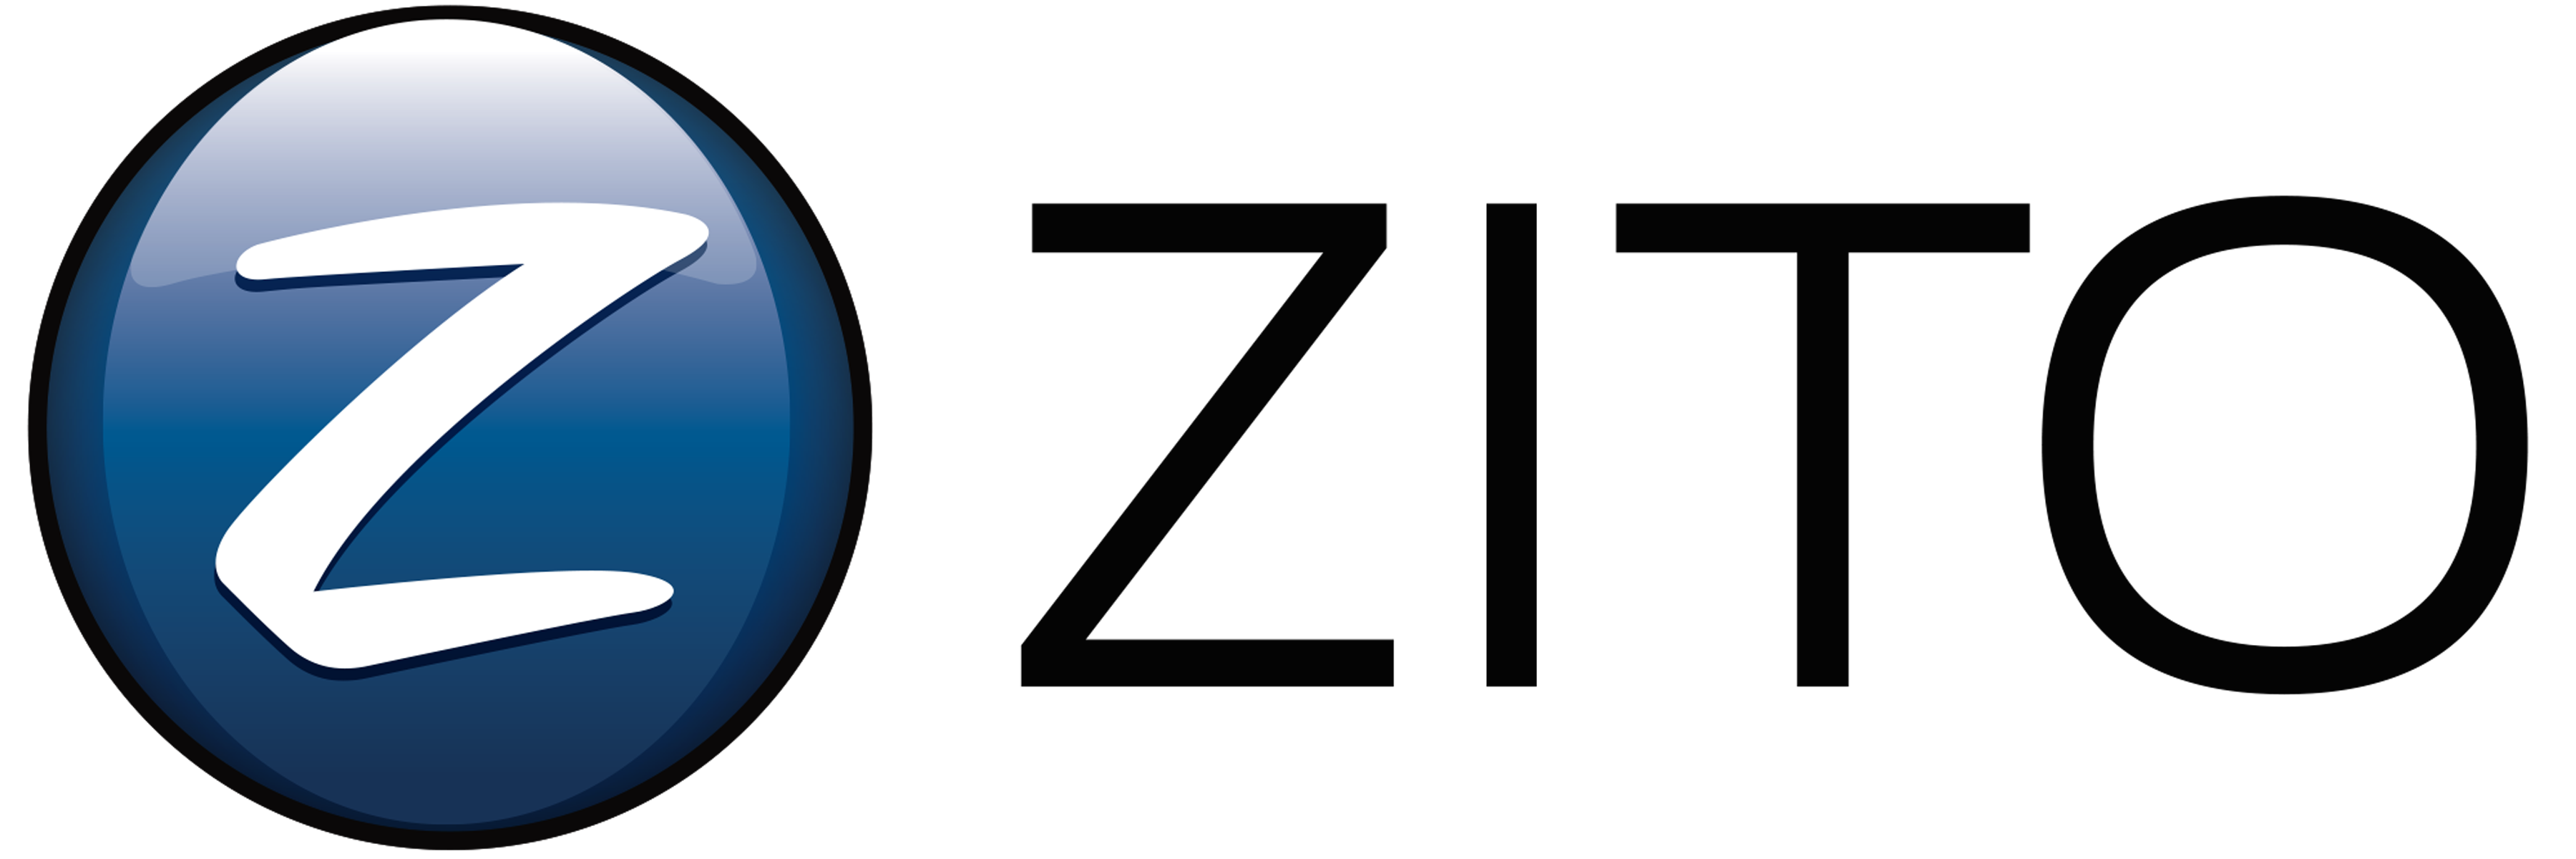 Zito Media to Provide Its 20x2 Megabit Internet Service Available Free of Charge for Two Months to Low Income Residents